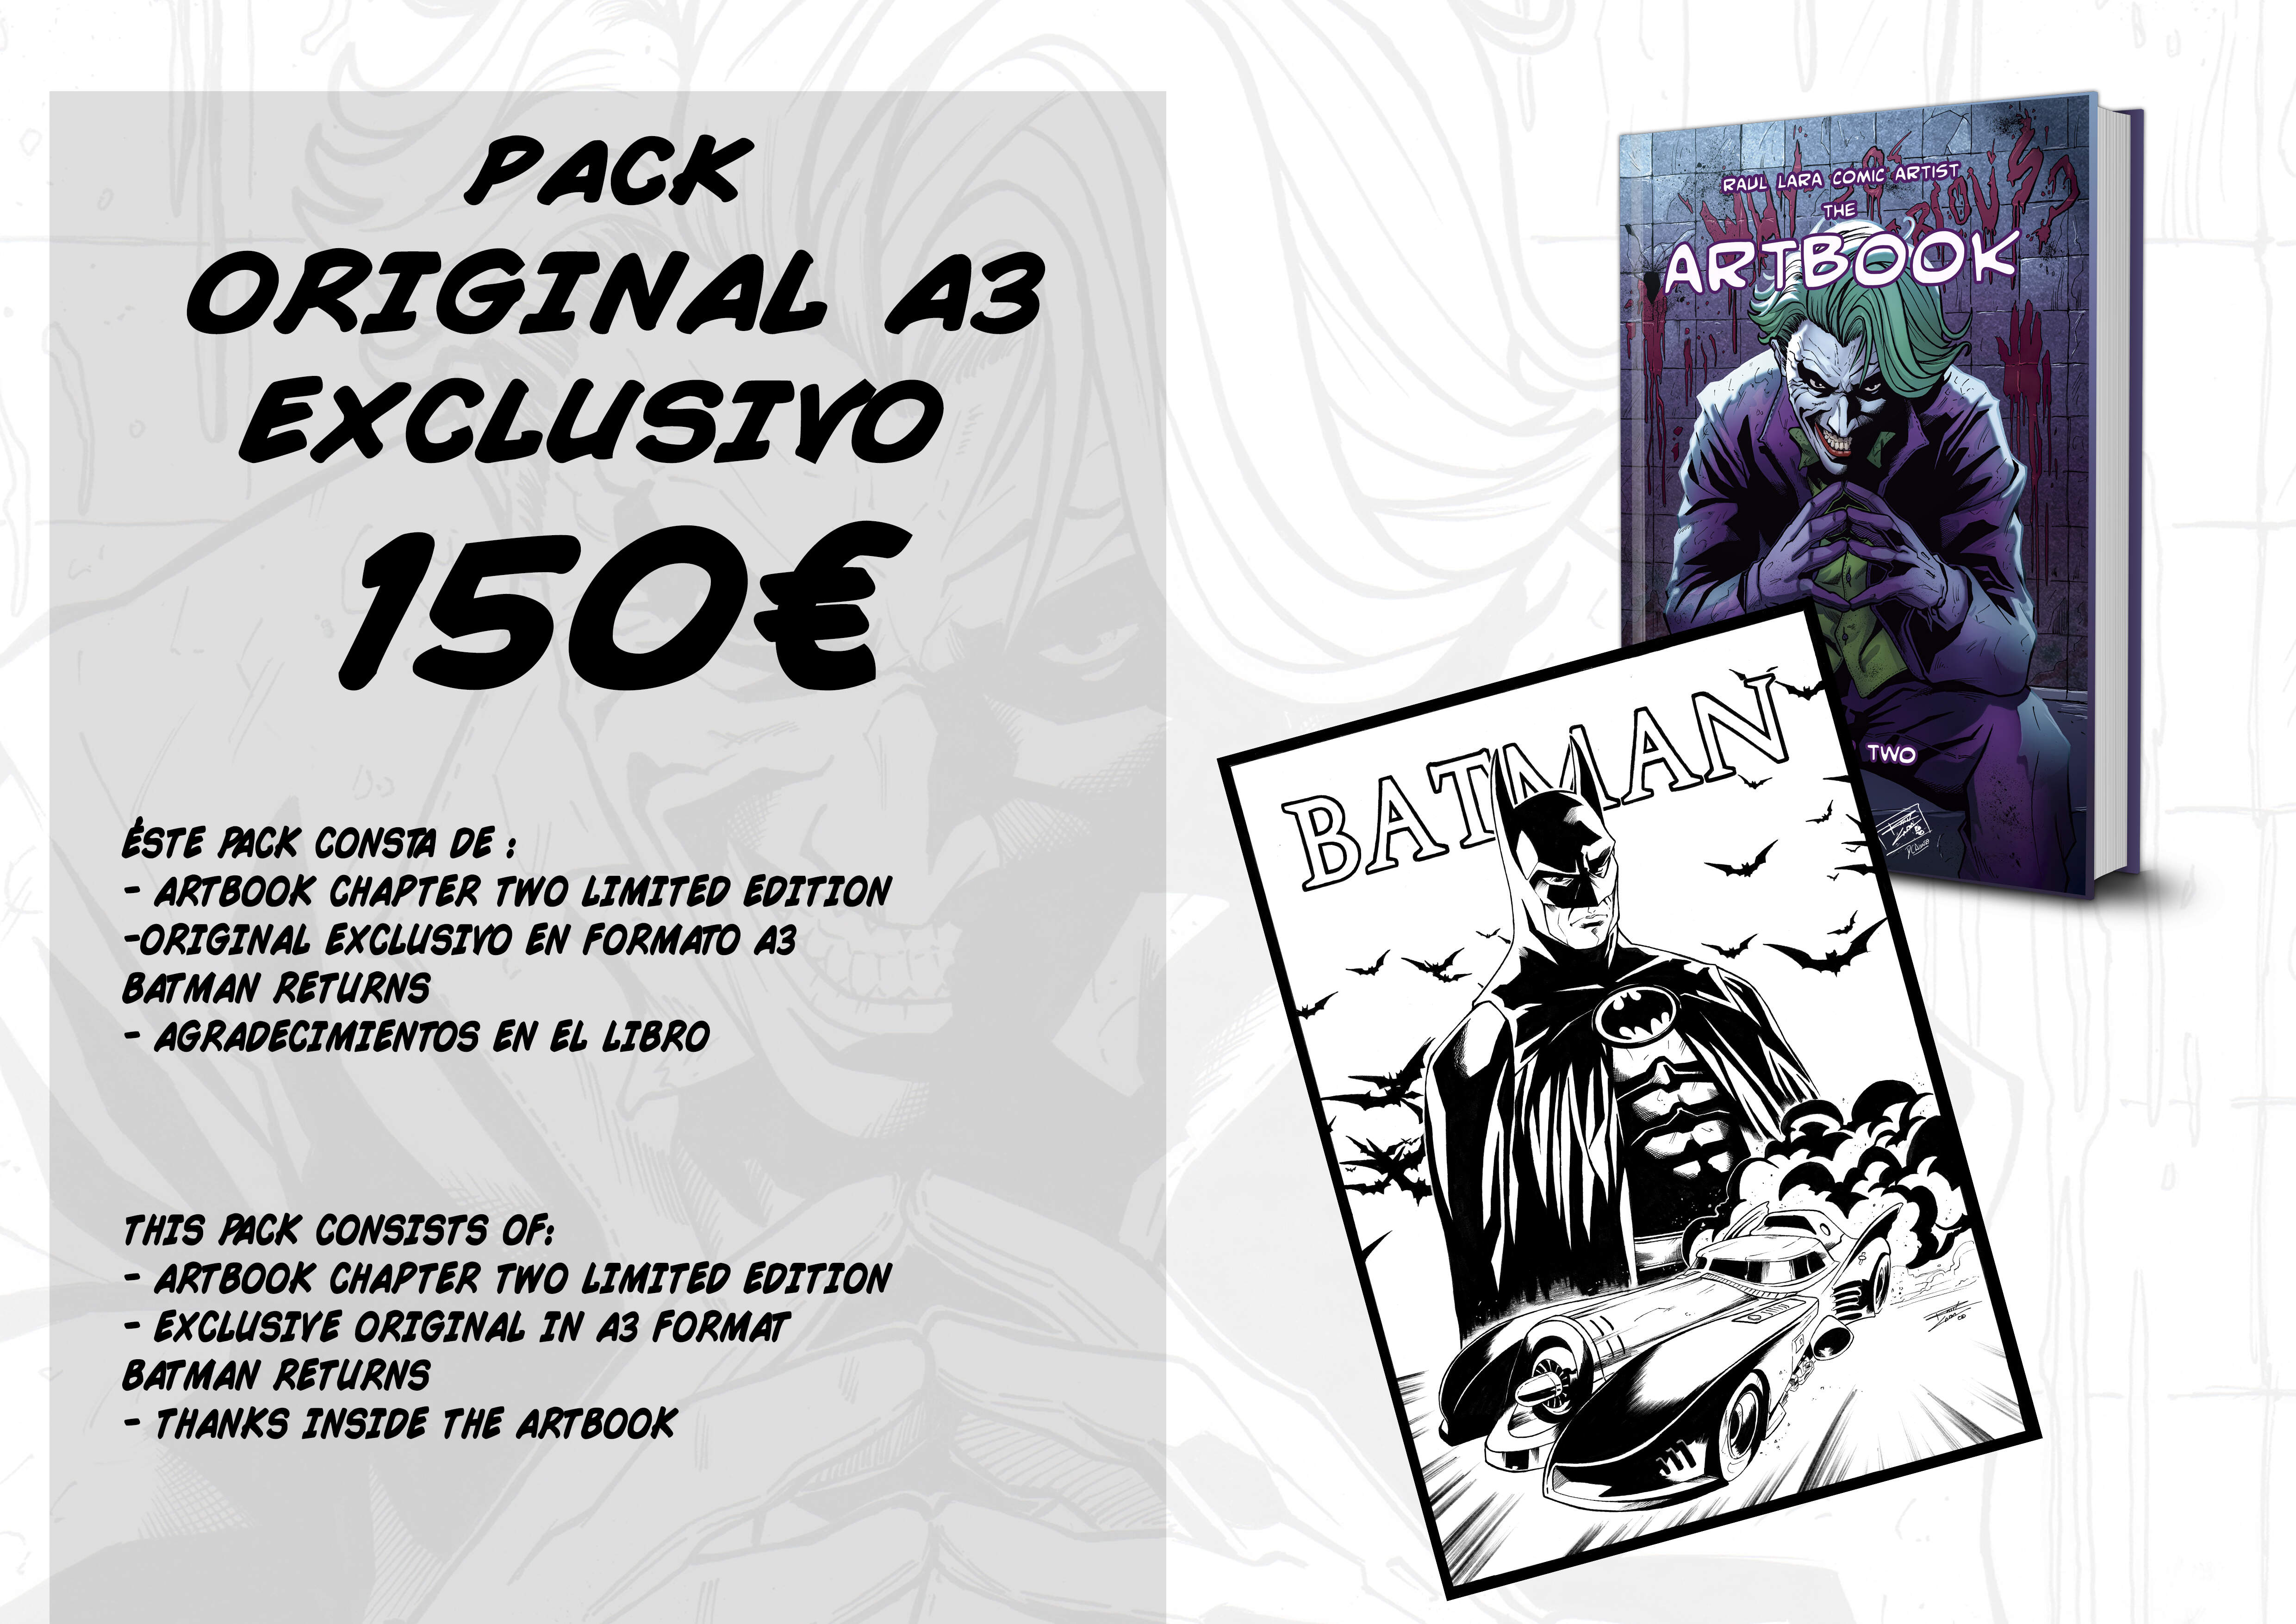 THE ARTBOOK CHAPTER TWO LIMITED EDITION  PACK 8